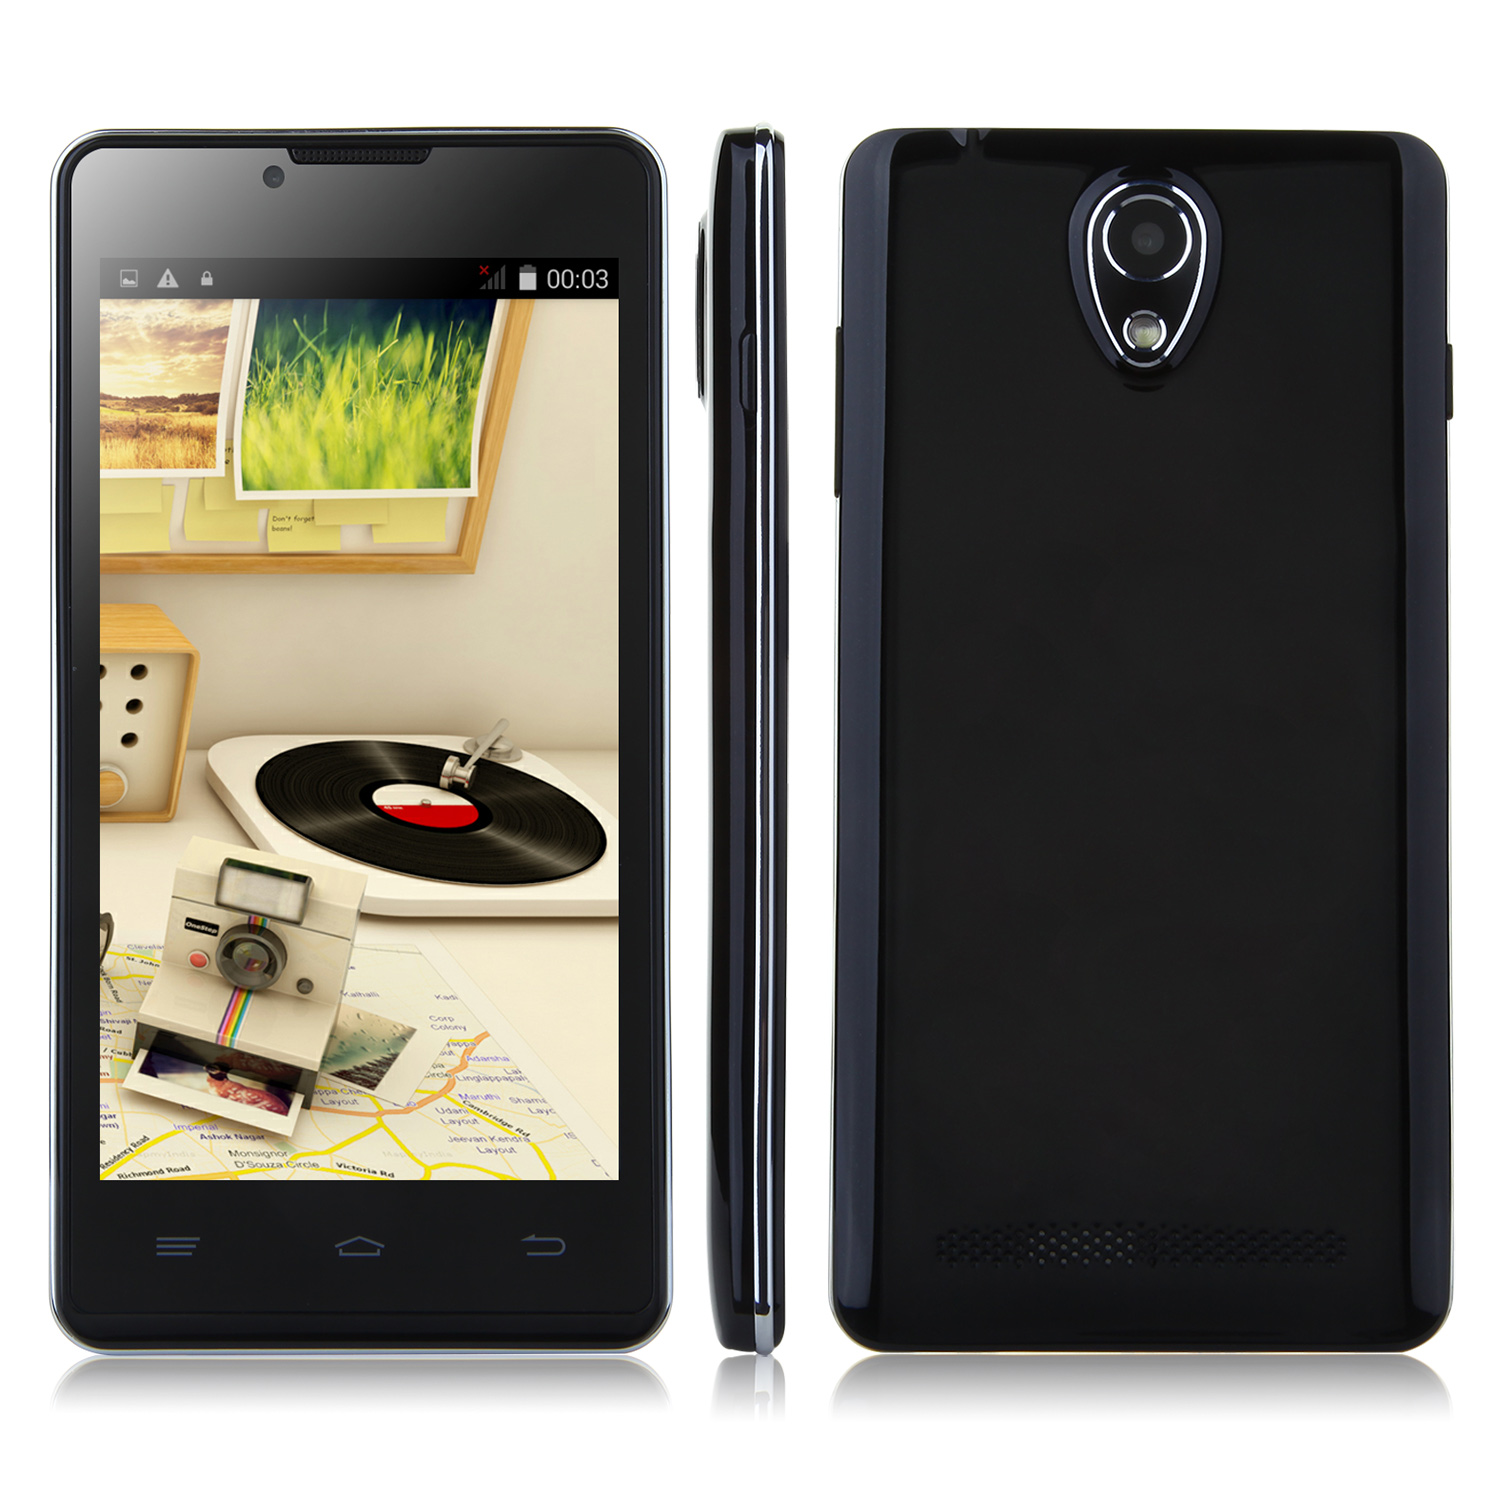 Tengda P9 Smartphone Android 4.4 MTK6572W 3G GPS 4.5 Inch - Black